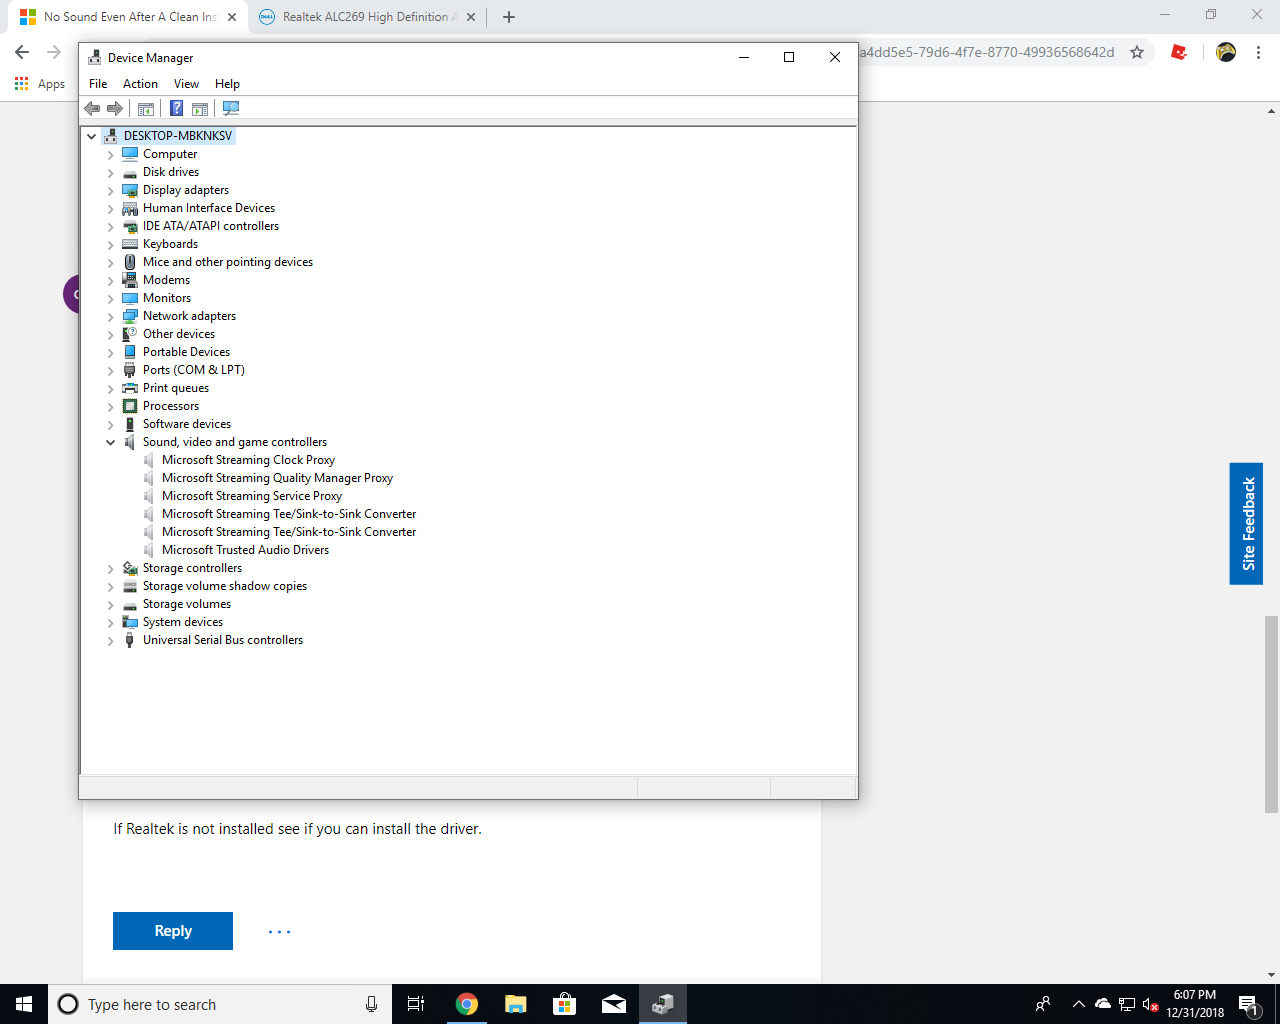 No Sound Even After A Clean Install Of Windows 10 - Microsoft Community